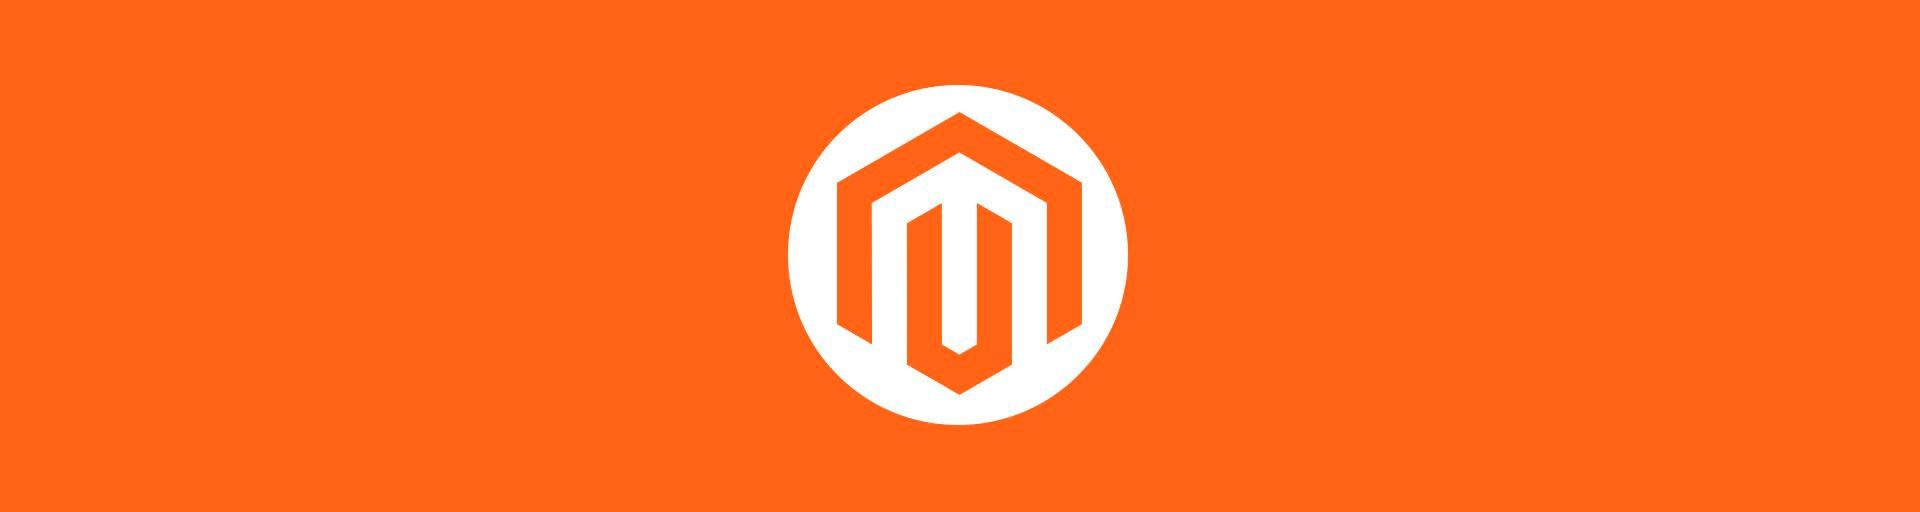 Magento: BIGINT UNSIGNED value is out of range